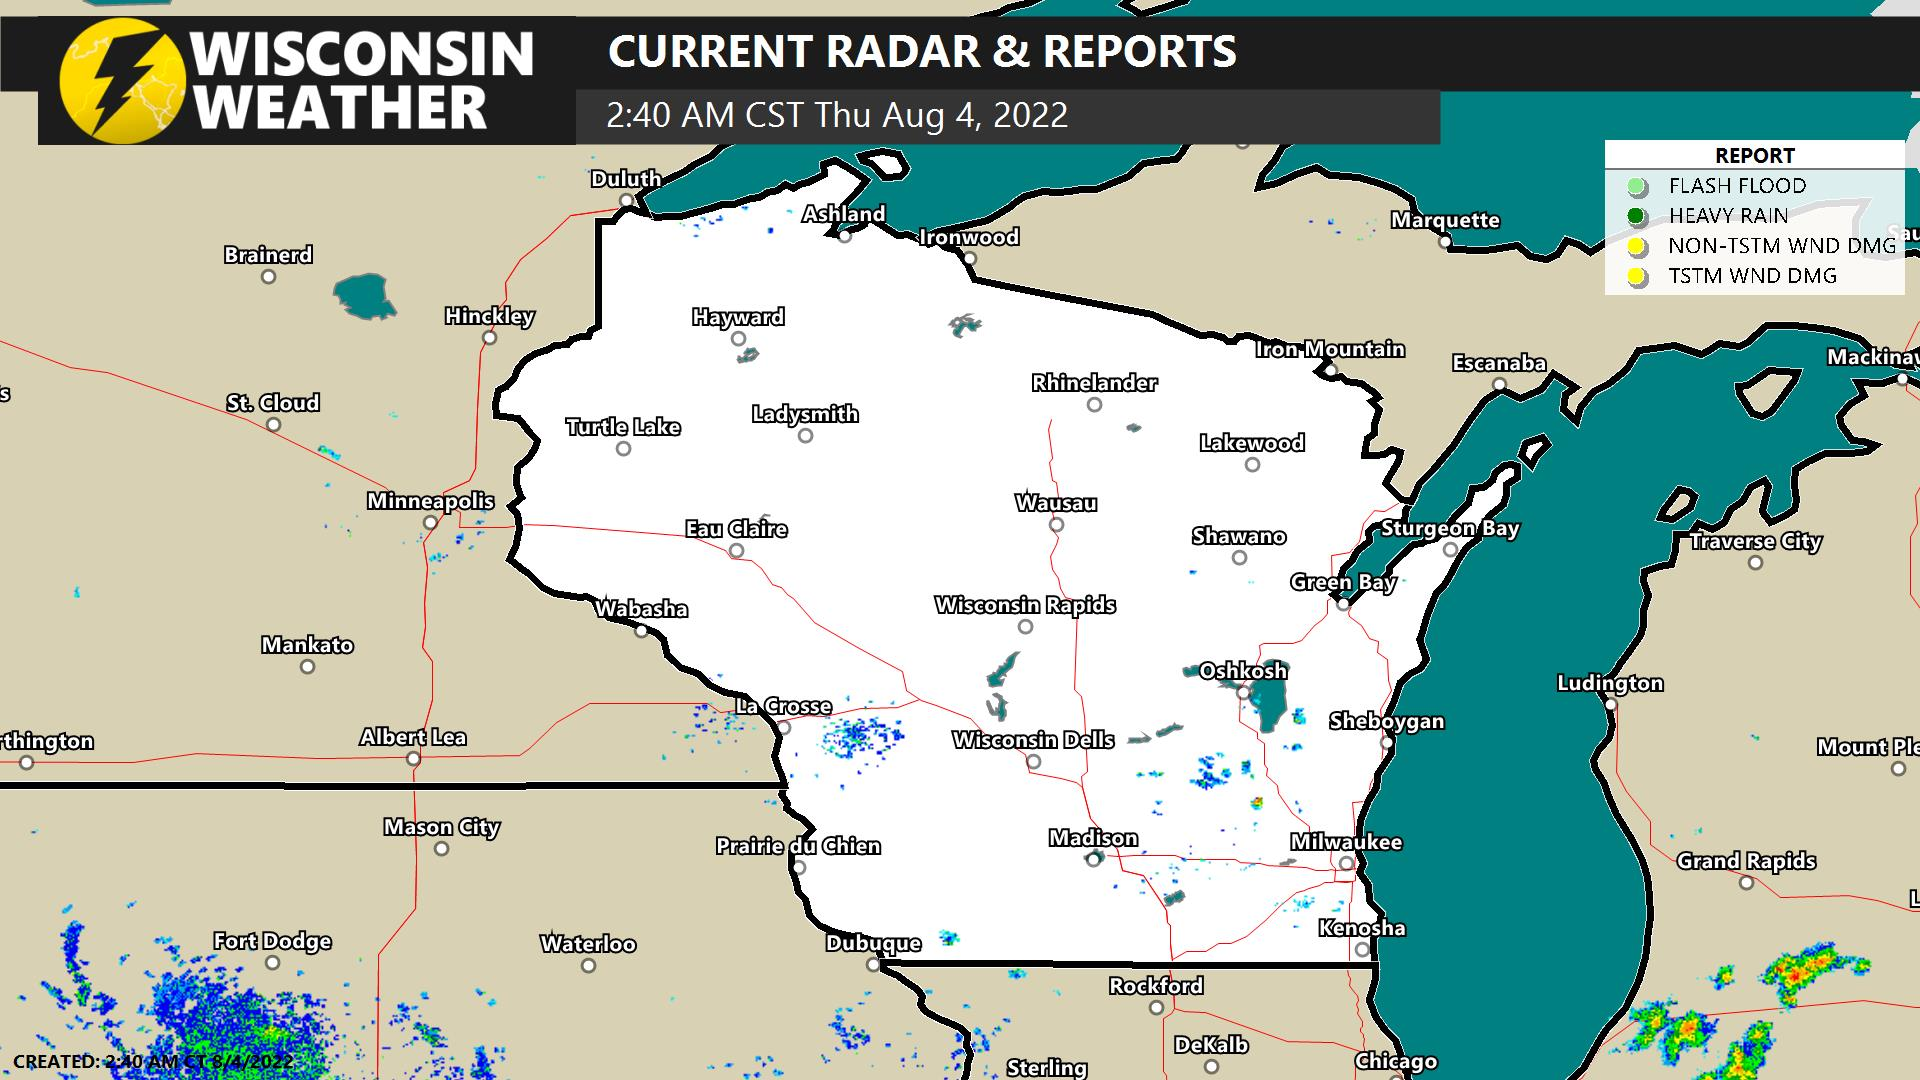 Current Wisconsin radar and storm reports